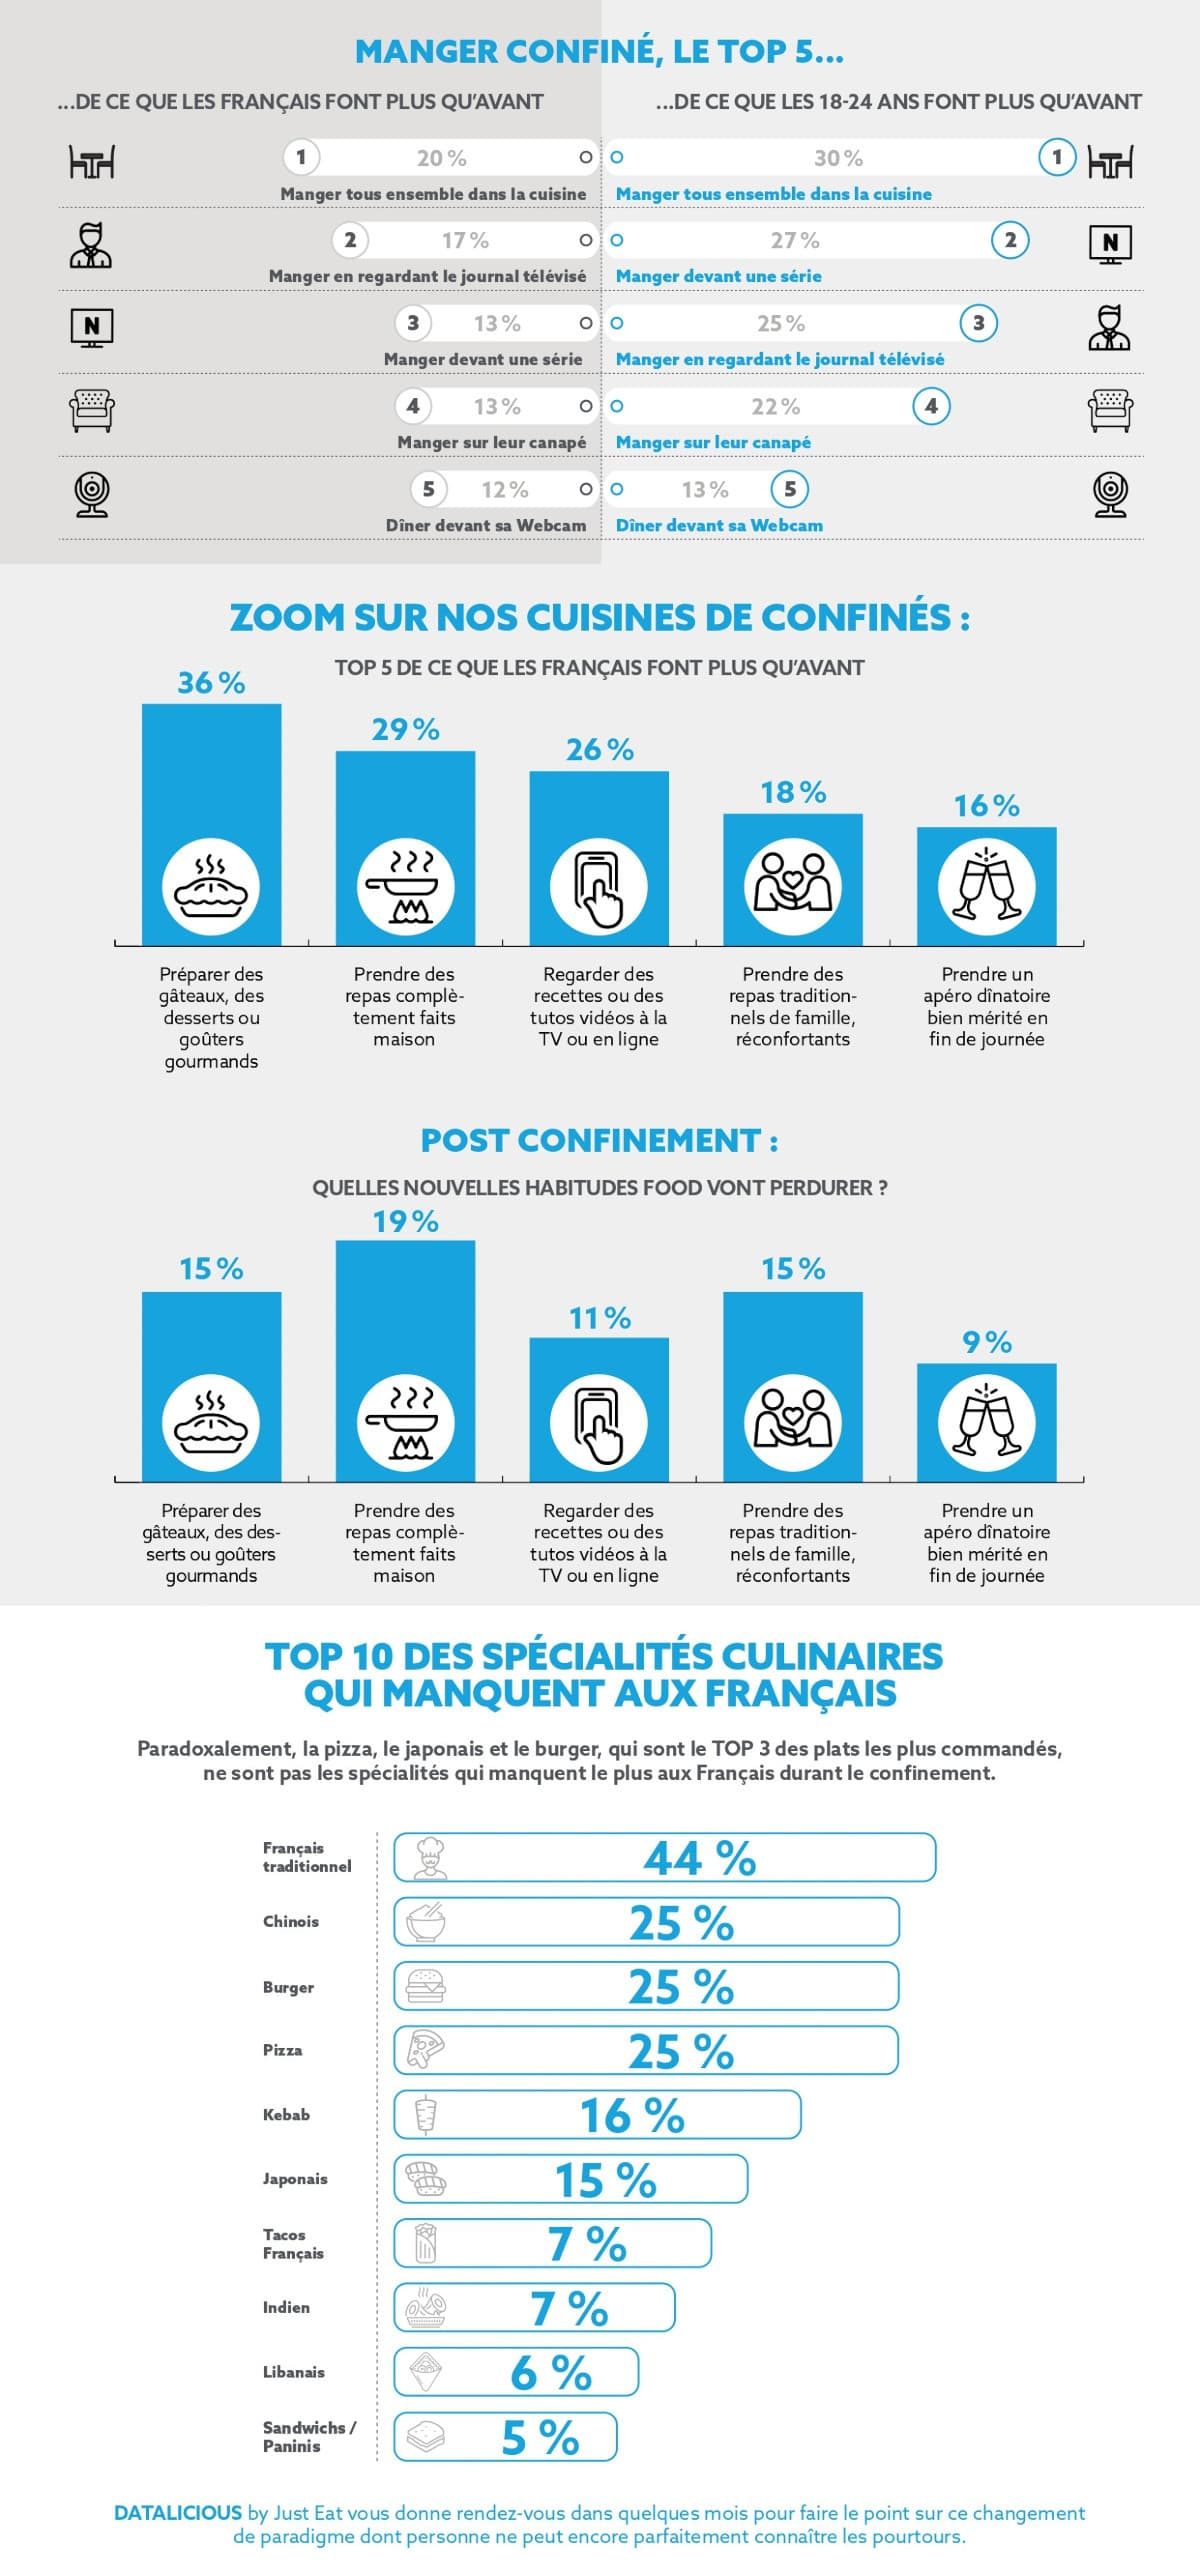 Infographie Datalicious by Just Eat